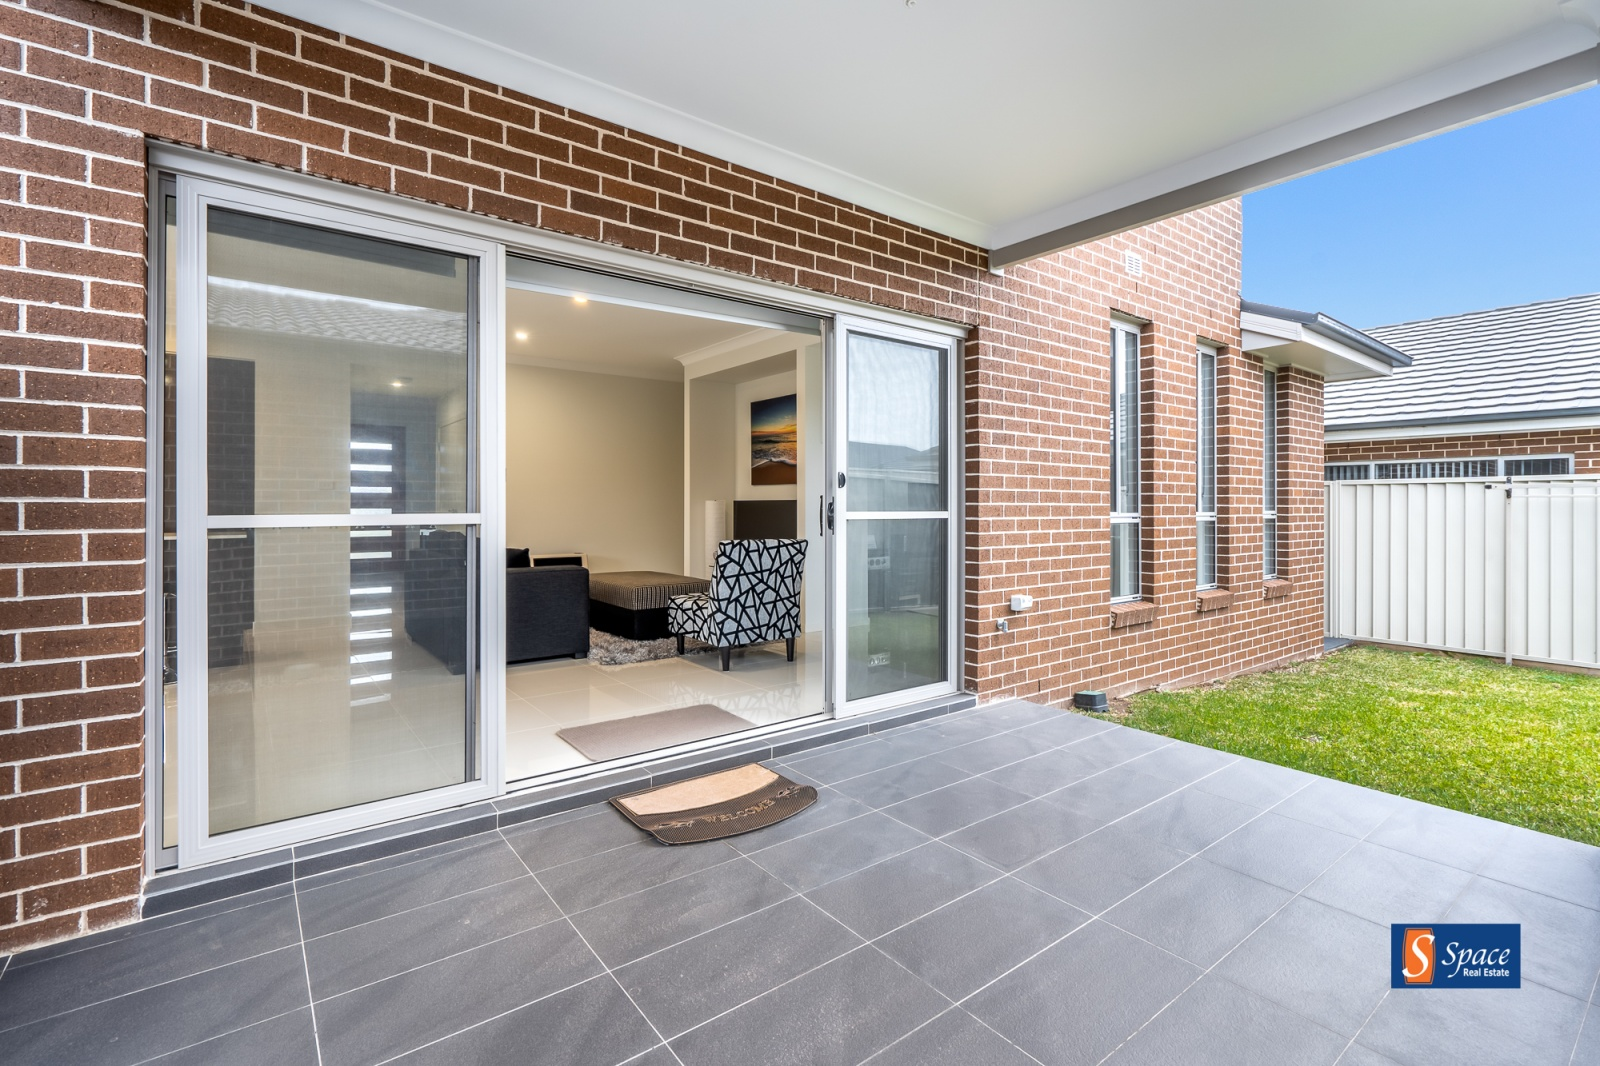 20 Willmington Loop,Oran Park,NSW,4 Bedrooms Bedrooms,2.5 BathroomsBathrooms,House,Willmington Loop,1210